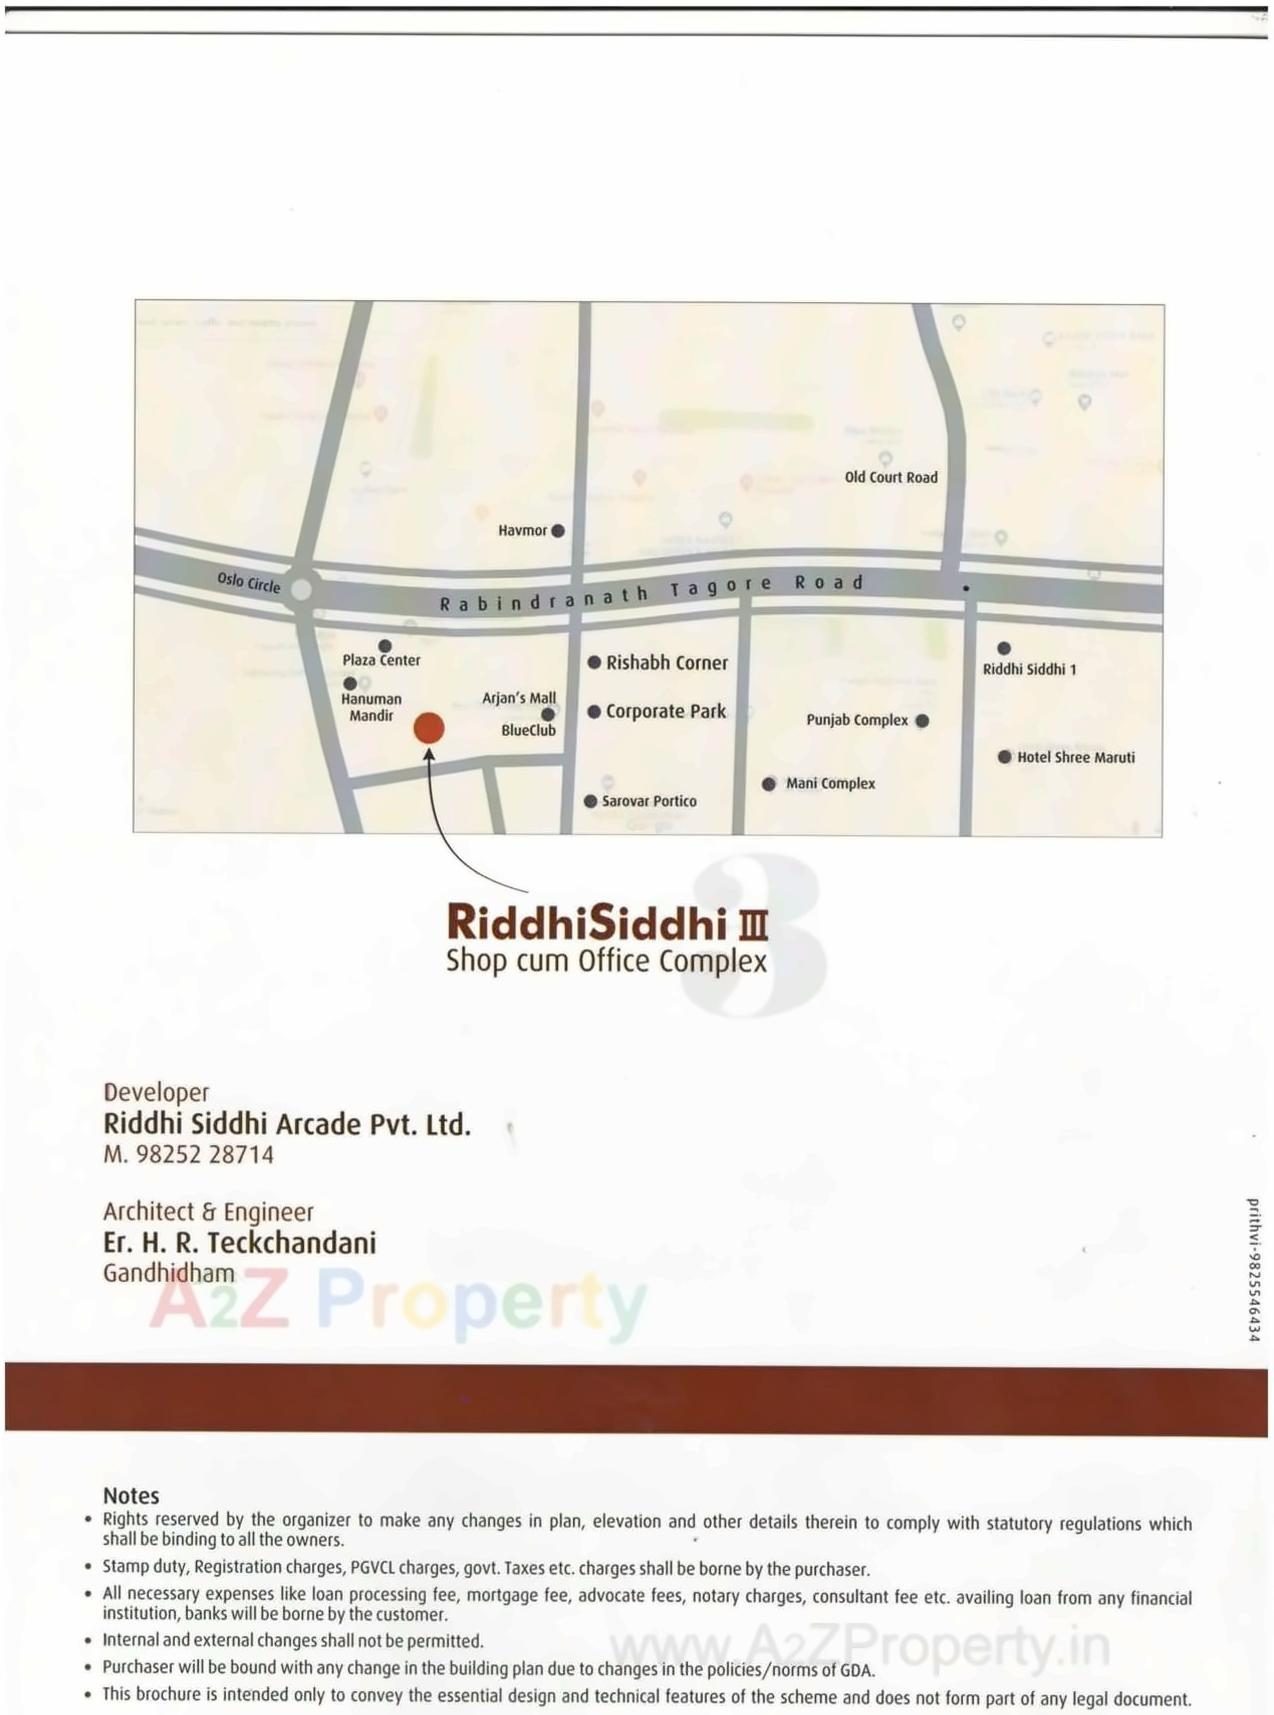 Riddhi Siddhi Arcade Iii - Rera approved project at